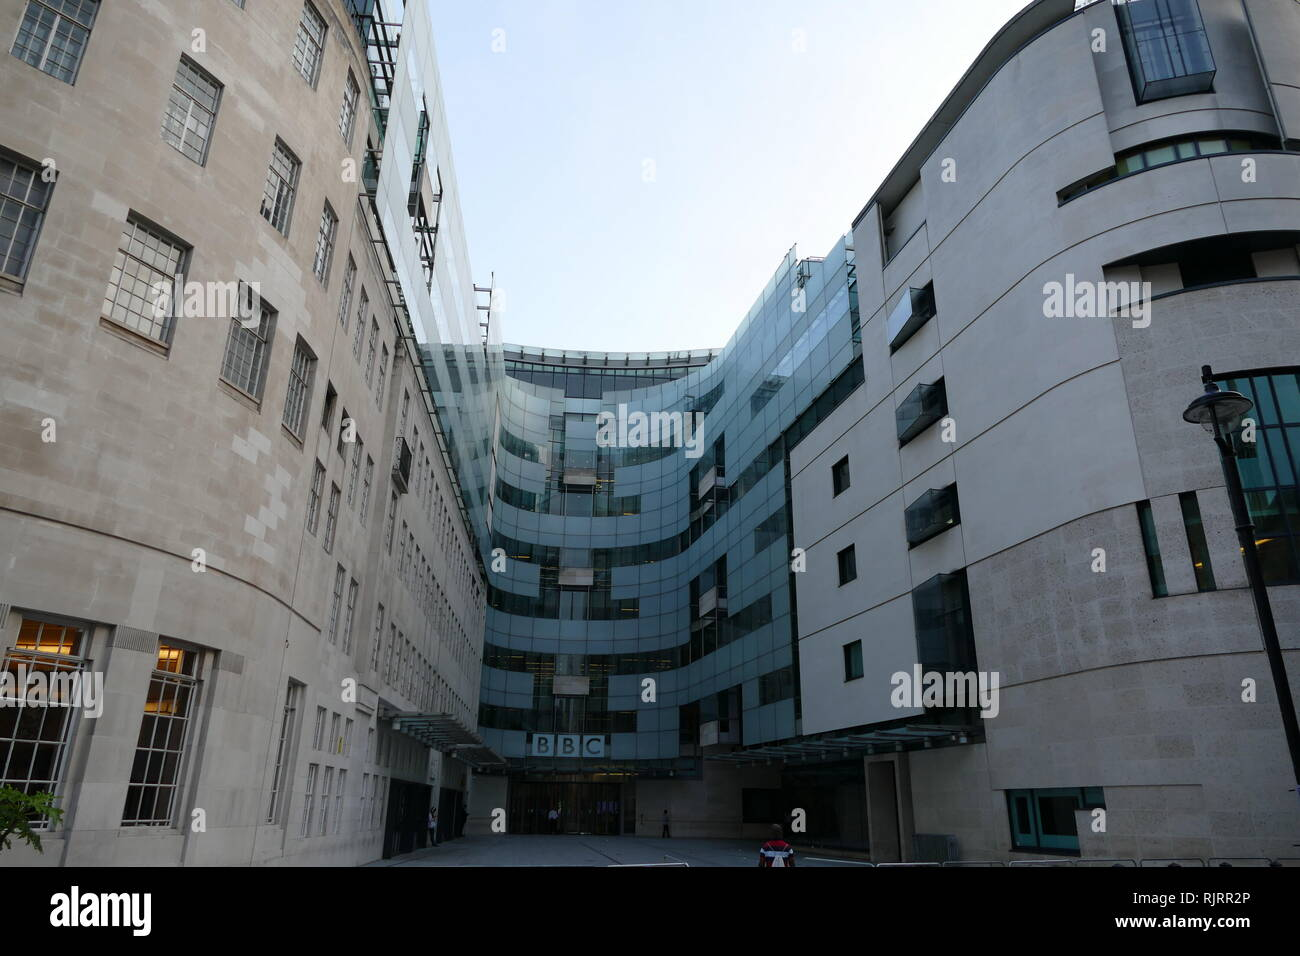 Broadcasting House; headquarters of the BBC, in London. The first radio broadcast from the building was made on 15 March 1932. The main building is in Art Deco style, with a facing of Portland stone over a steel frame. - Stock Image